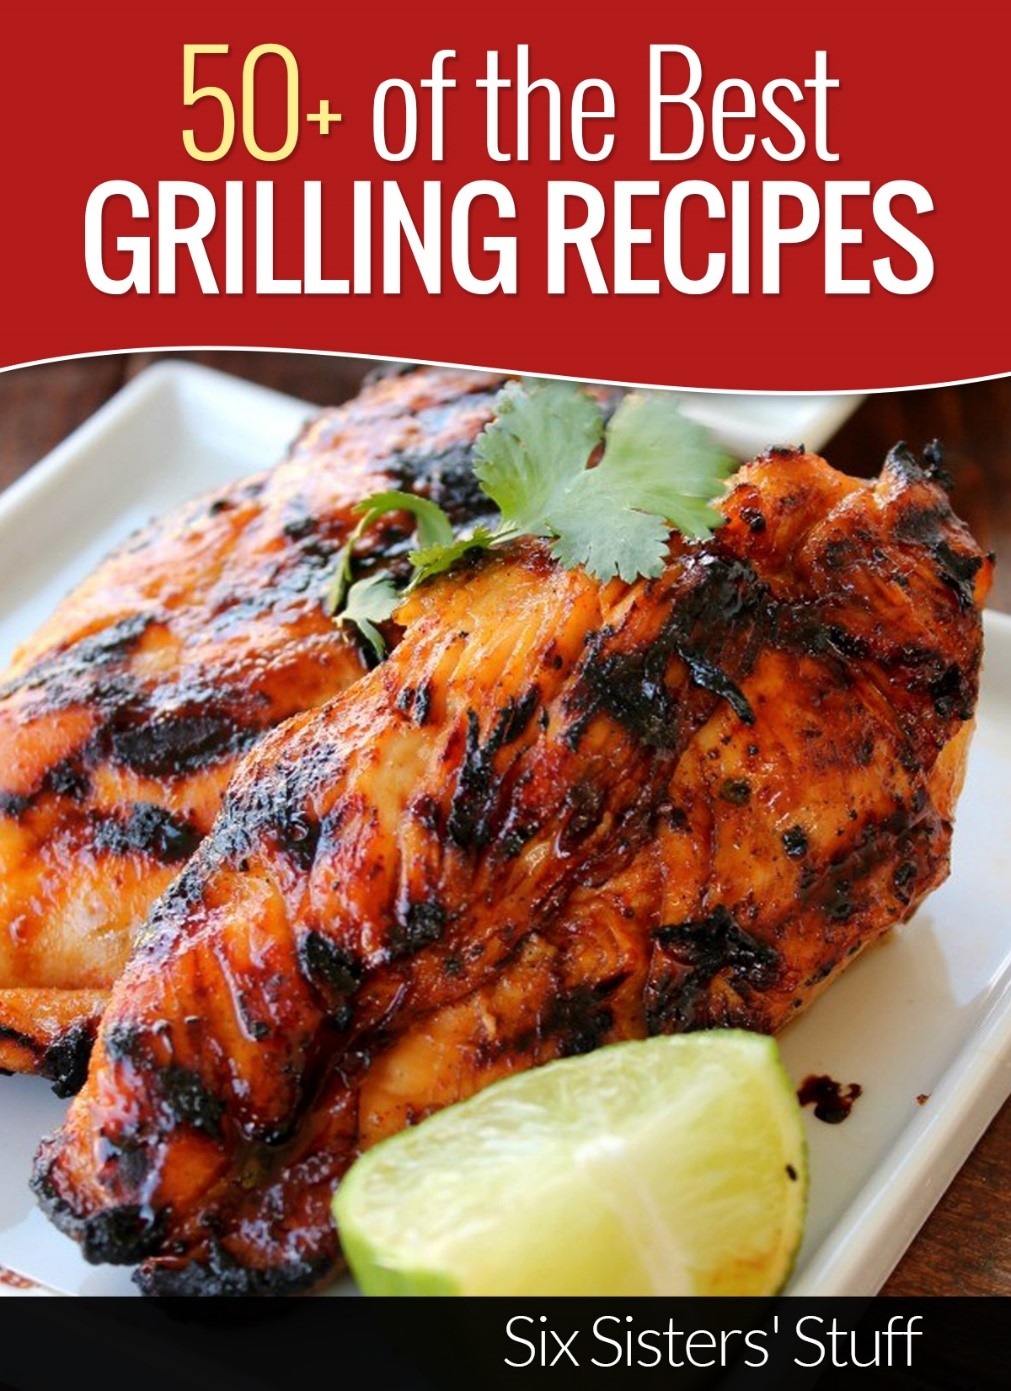 50 + of the best grilling recipes